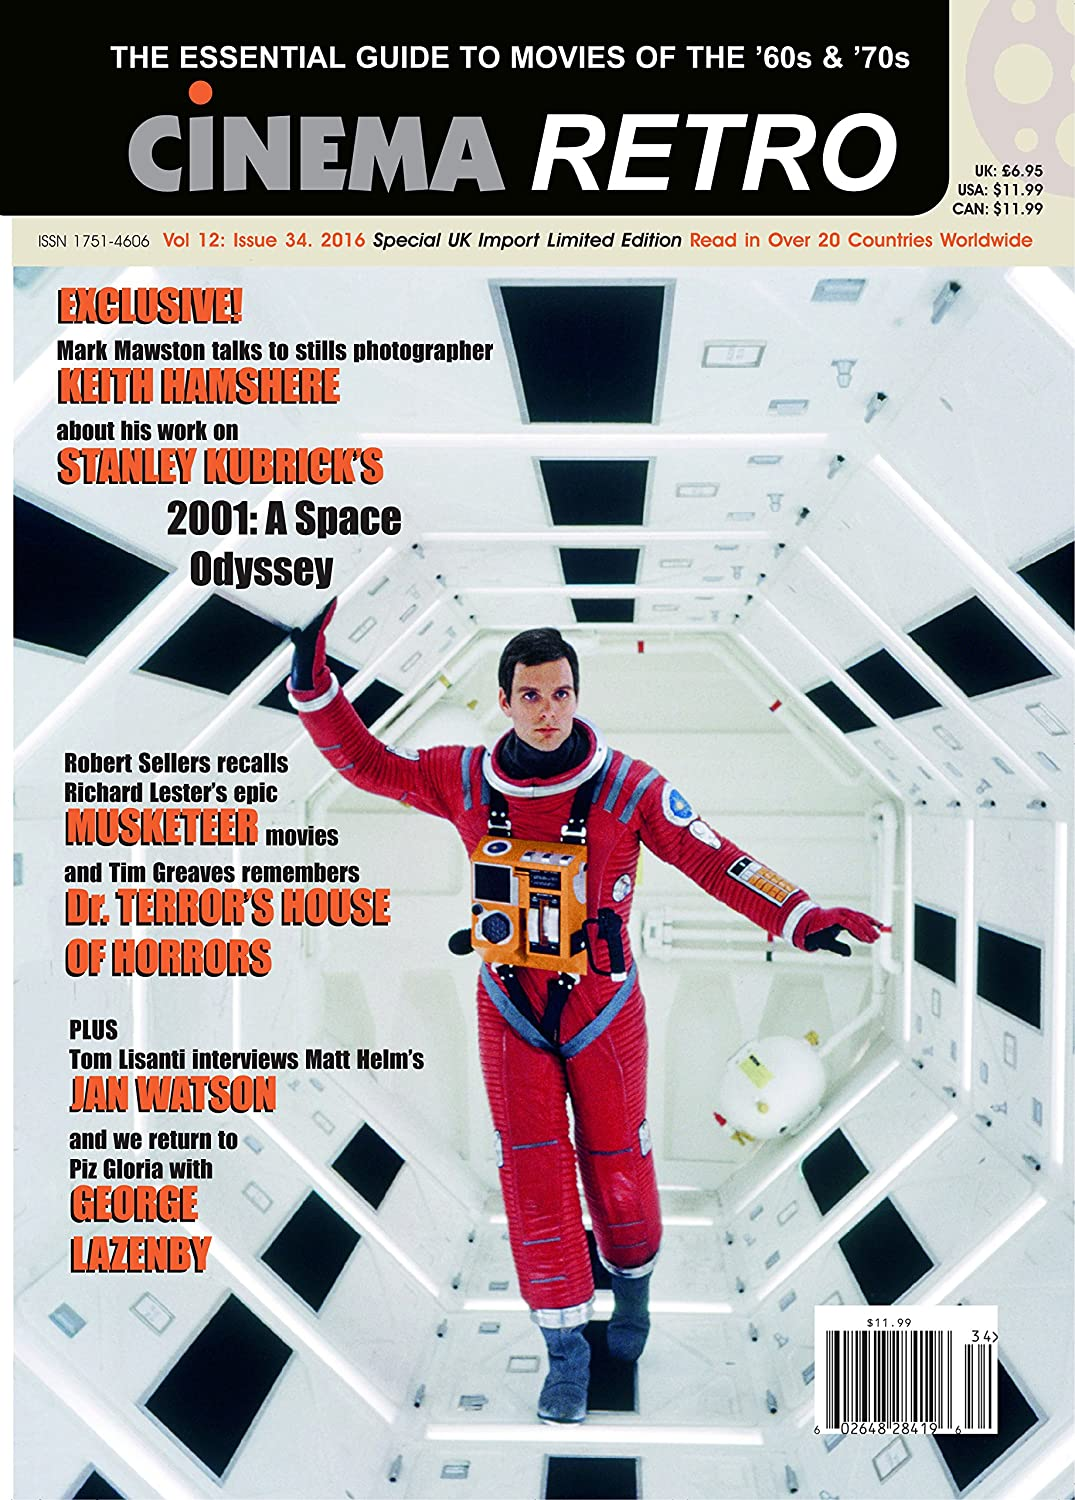 Cinema Retro Issue #34 Kubrick's 2001: A Space Odyssey James Bond Three Musketeers Dr. Terror's House of Horrors Dean Martin